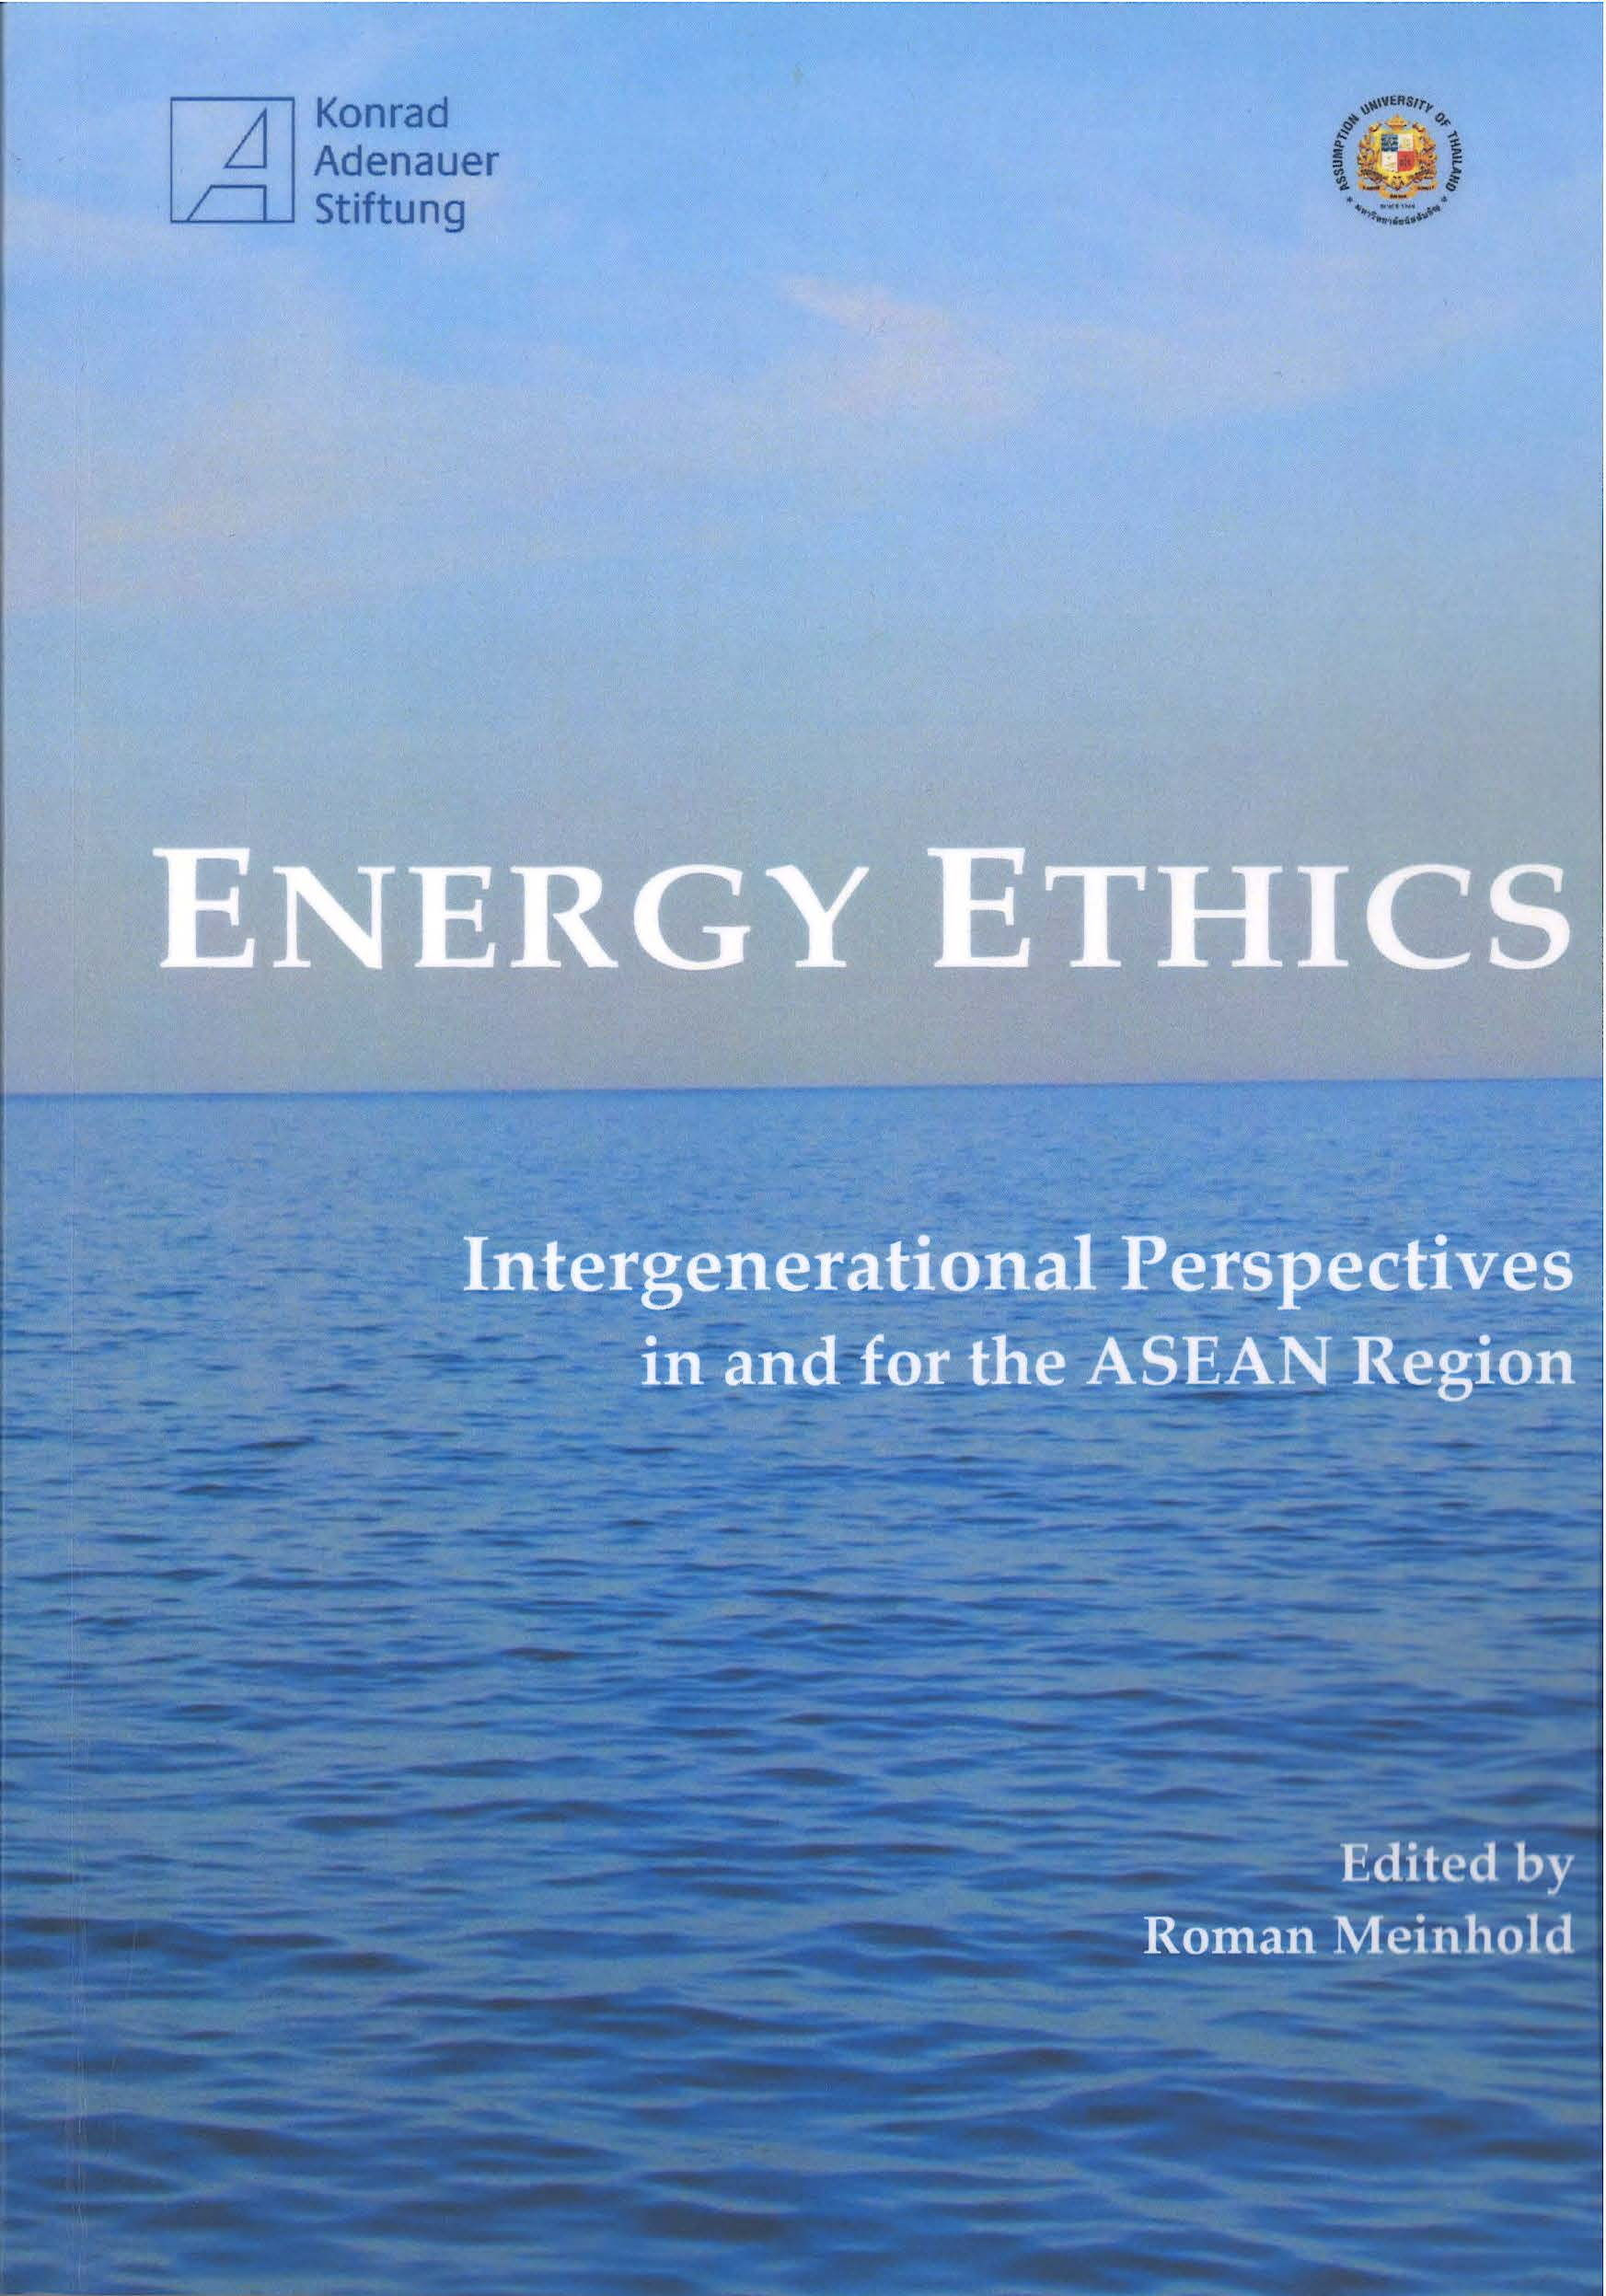 Cover: Energy Ethics: Intergenerational Perspectives in and for the ASEAN Region